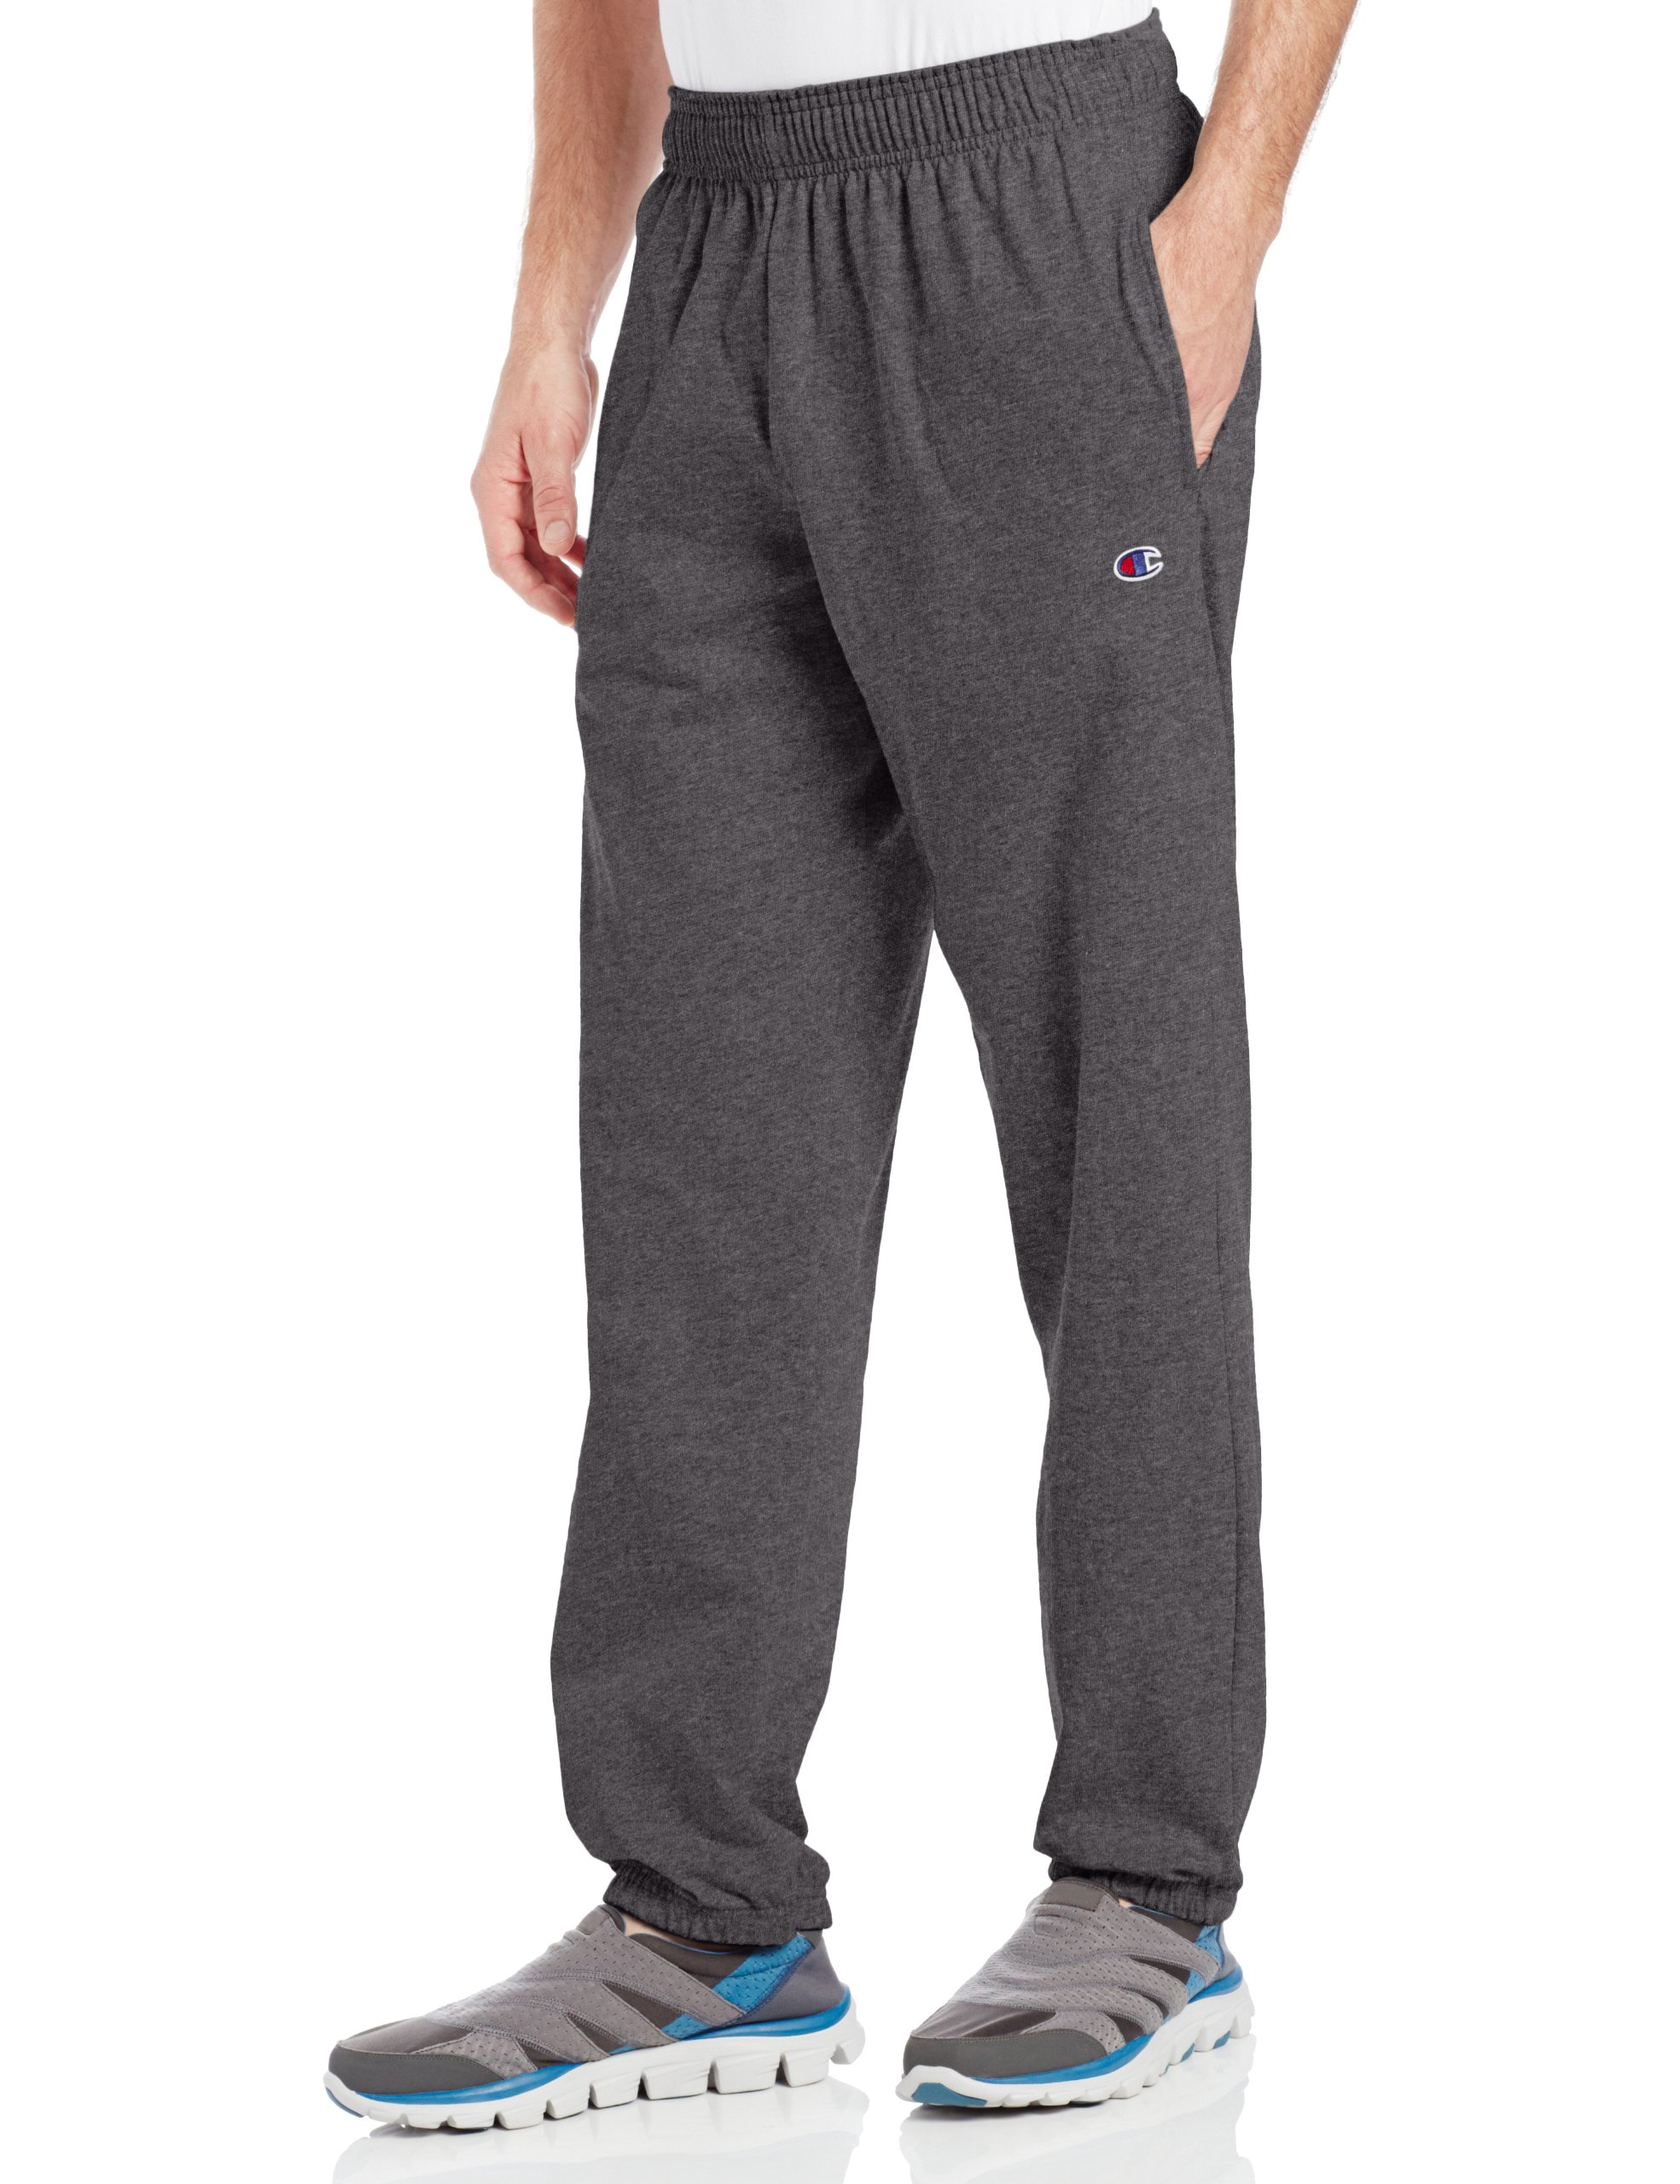 Champion Men's Closed Bottom Light Weight Jersey Sweatpant, Granite Heather, Medium by Champion